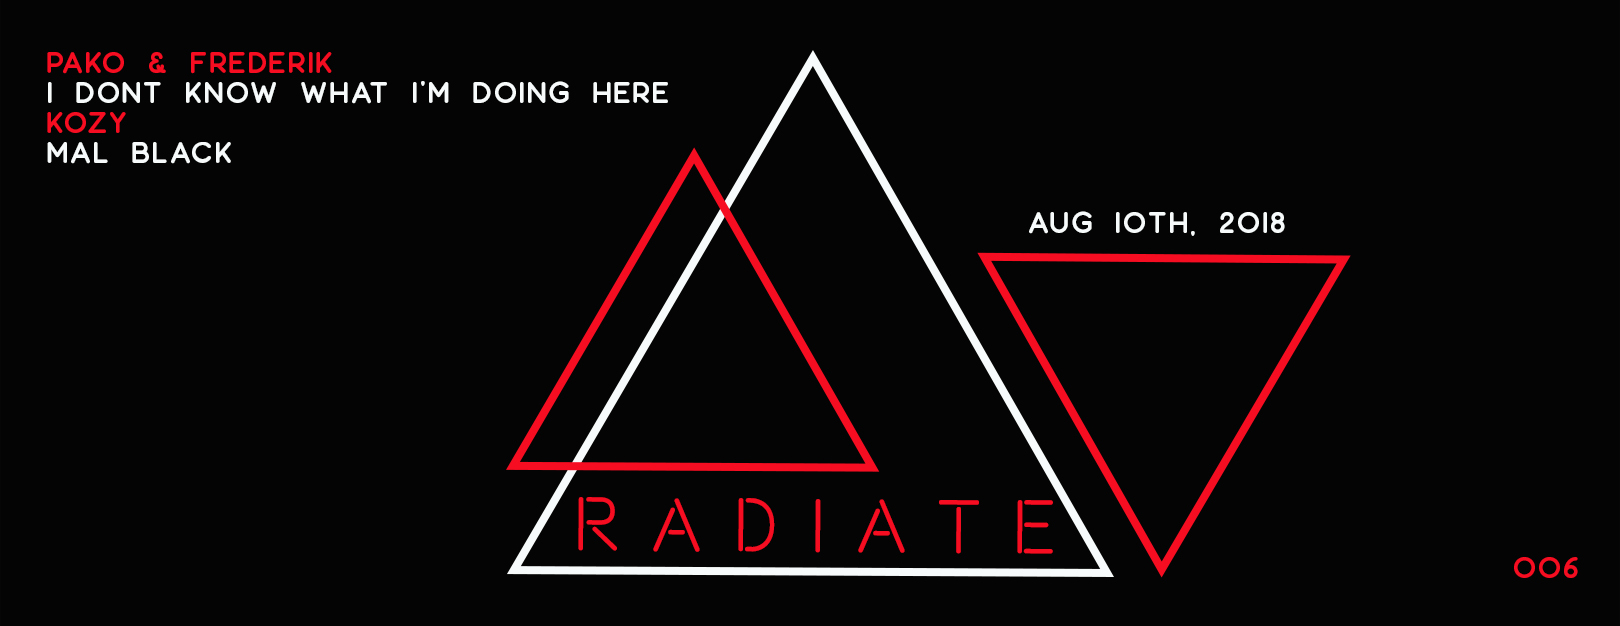 Iconic Review Exclusive – Pako & Frederik – 'I don't know what I'm doing here' EP  [Radiate]